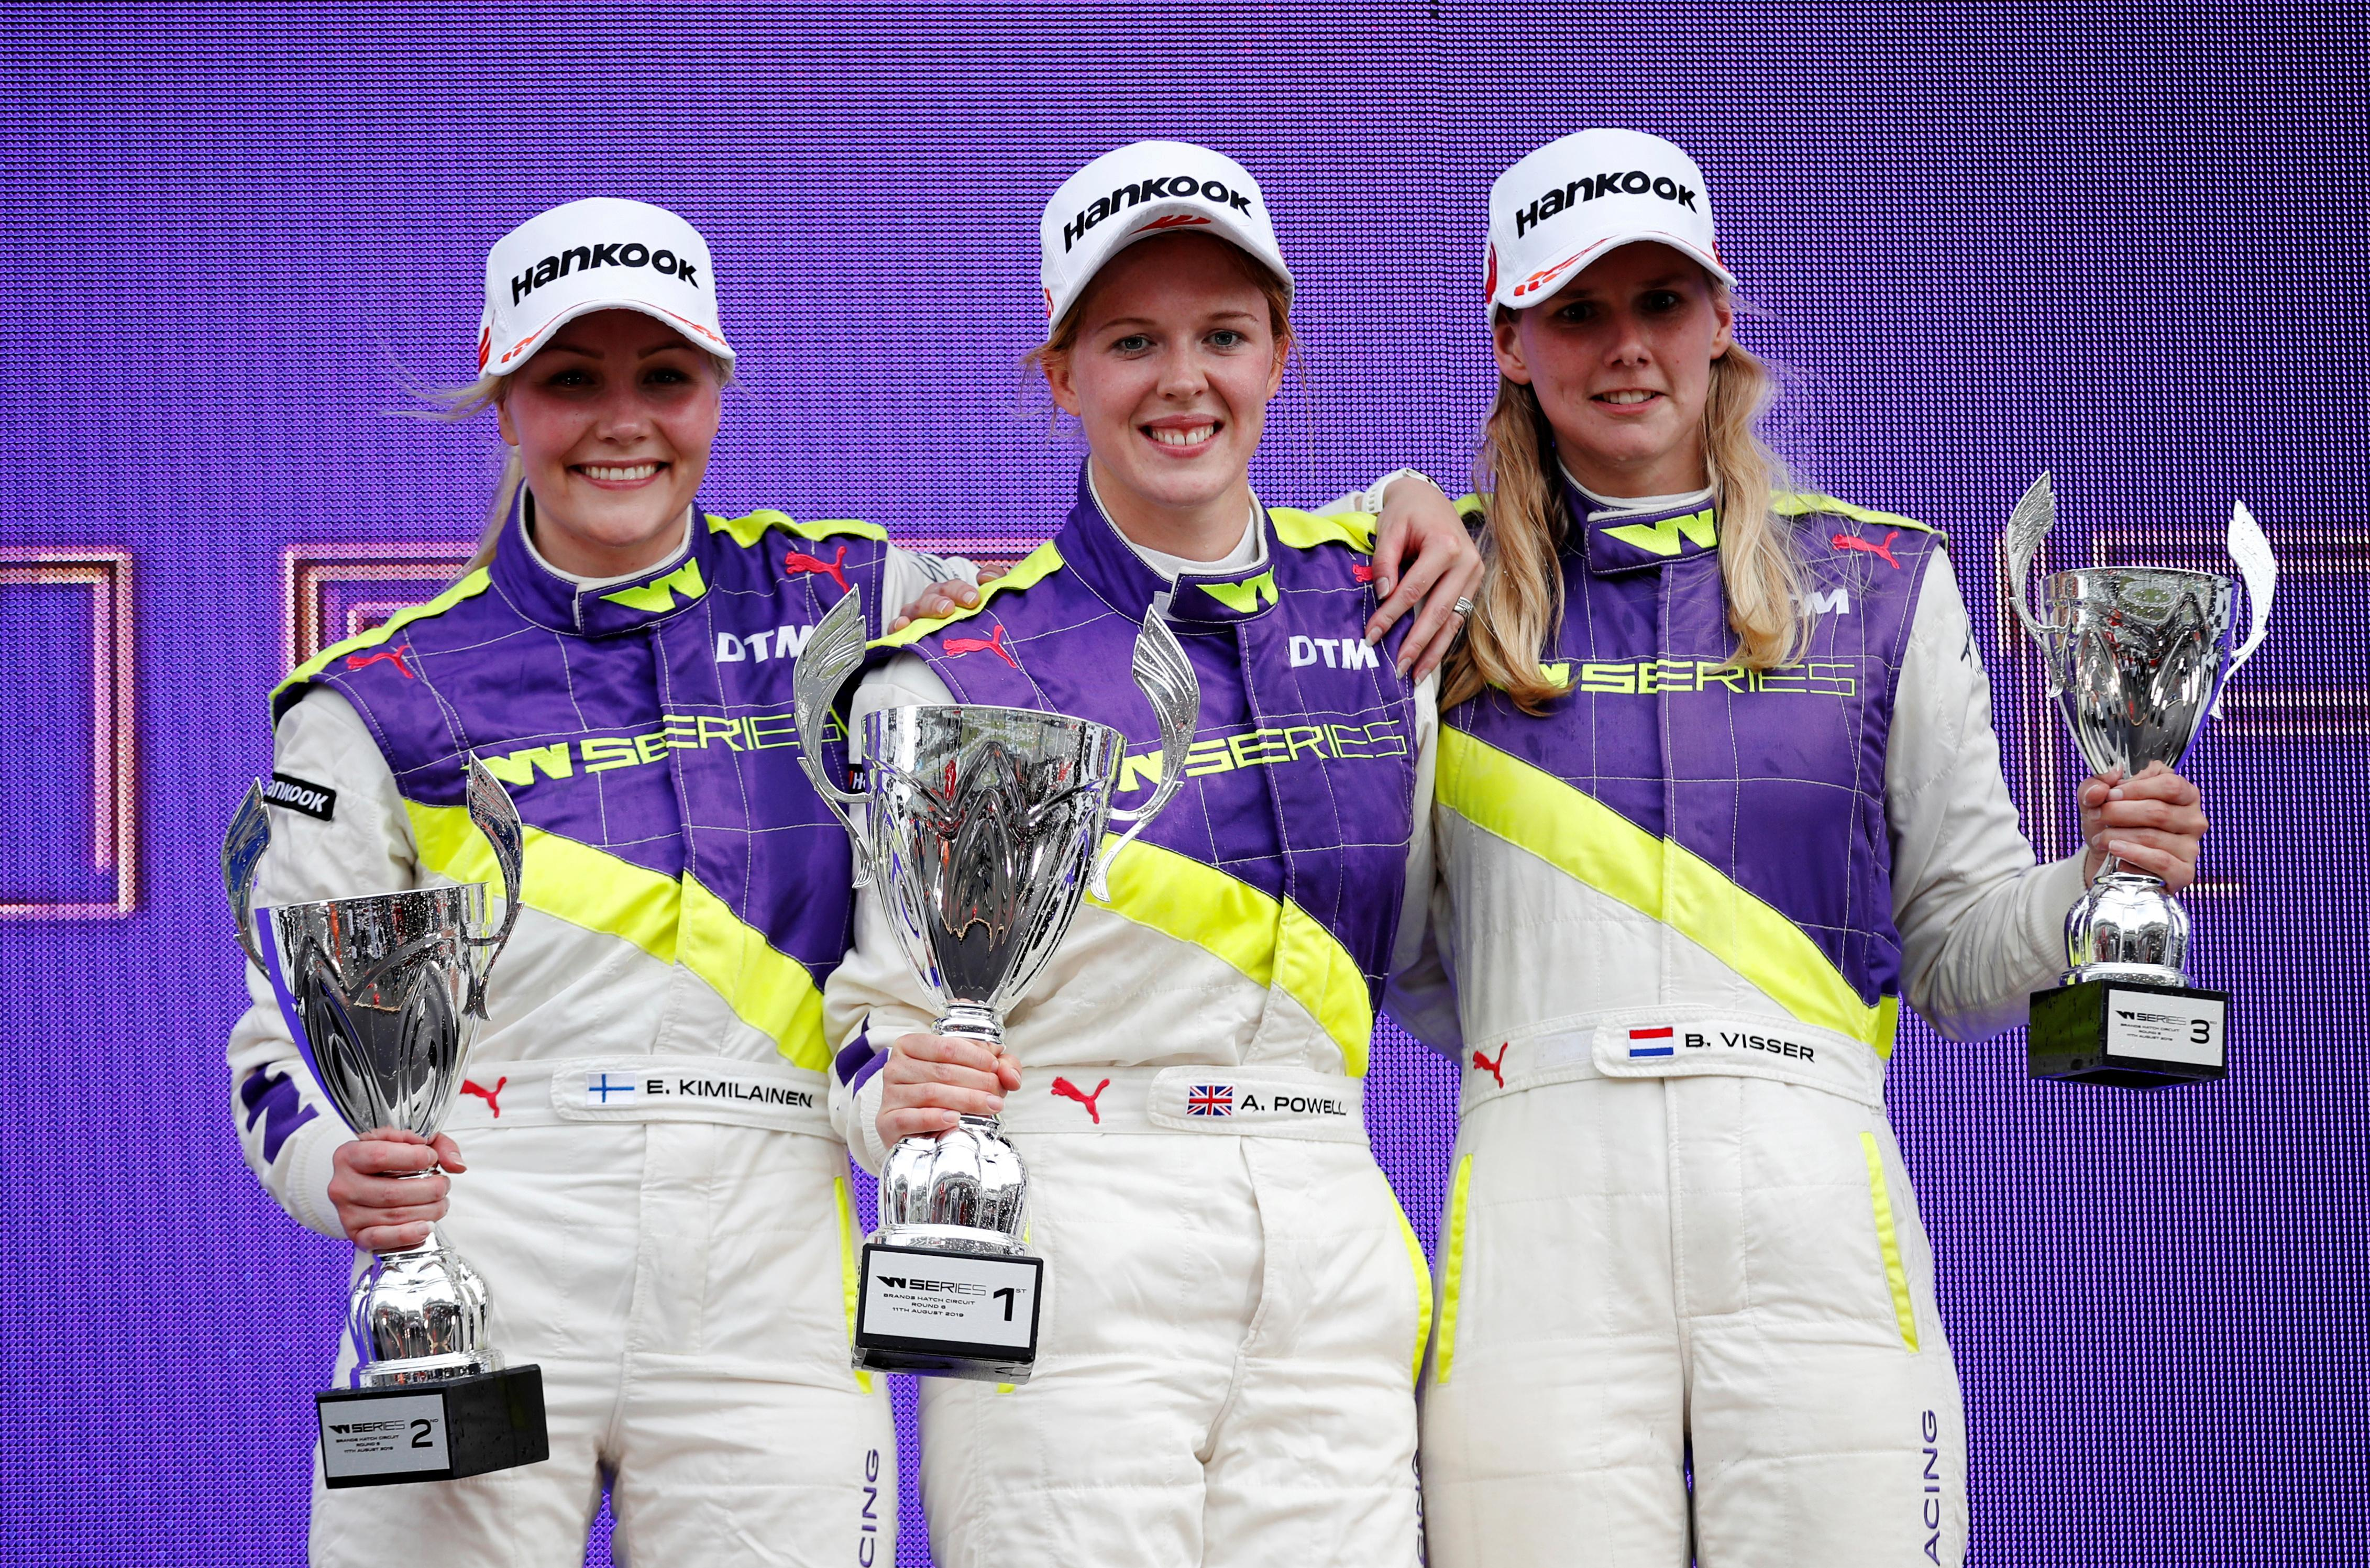 Motor racing: W Series to make a profit in year three, says founder